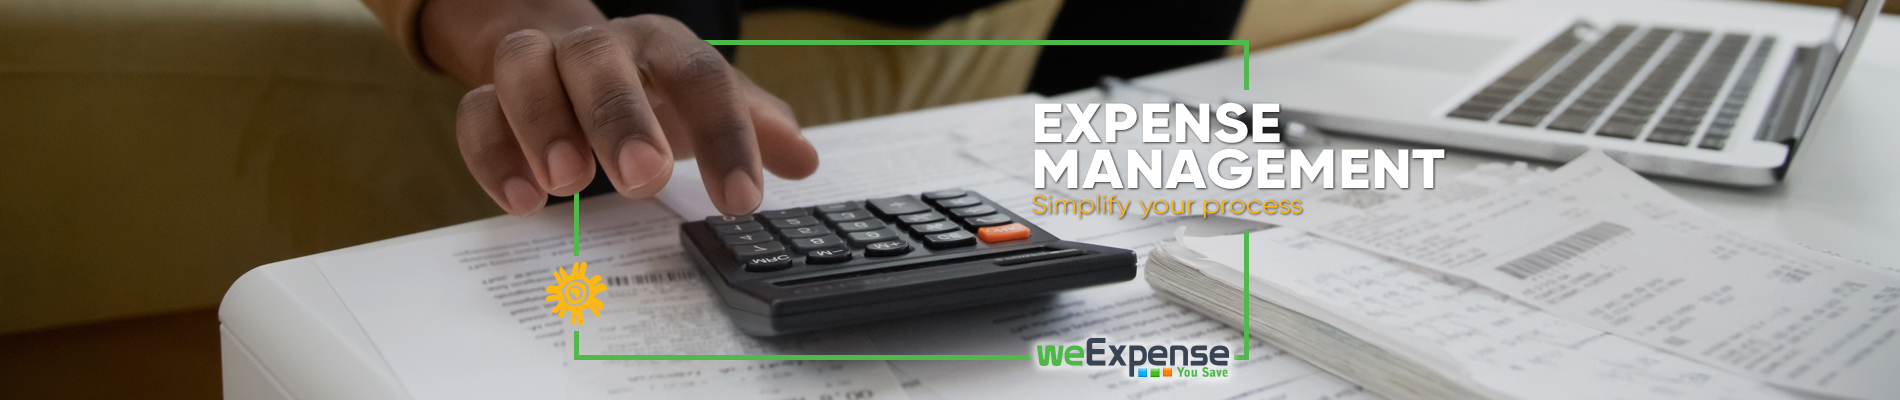 weExpense by Travelit